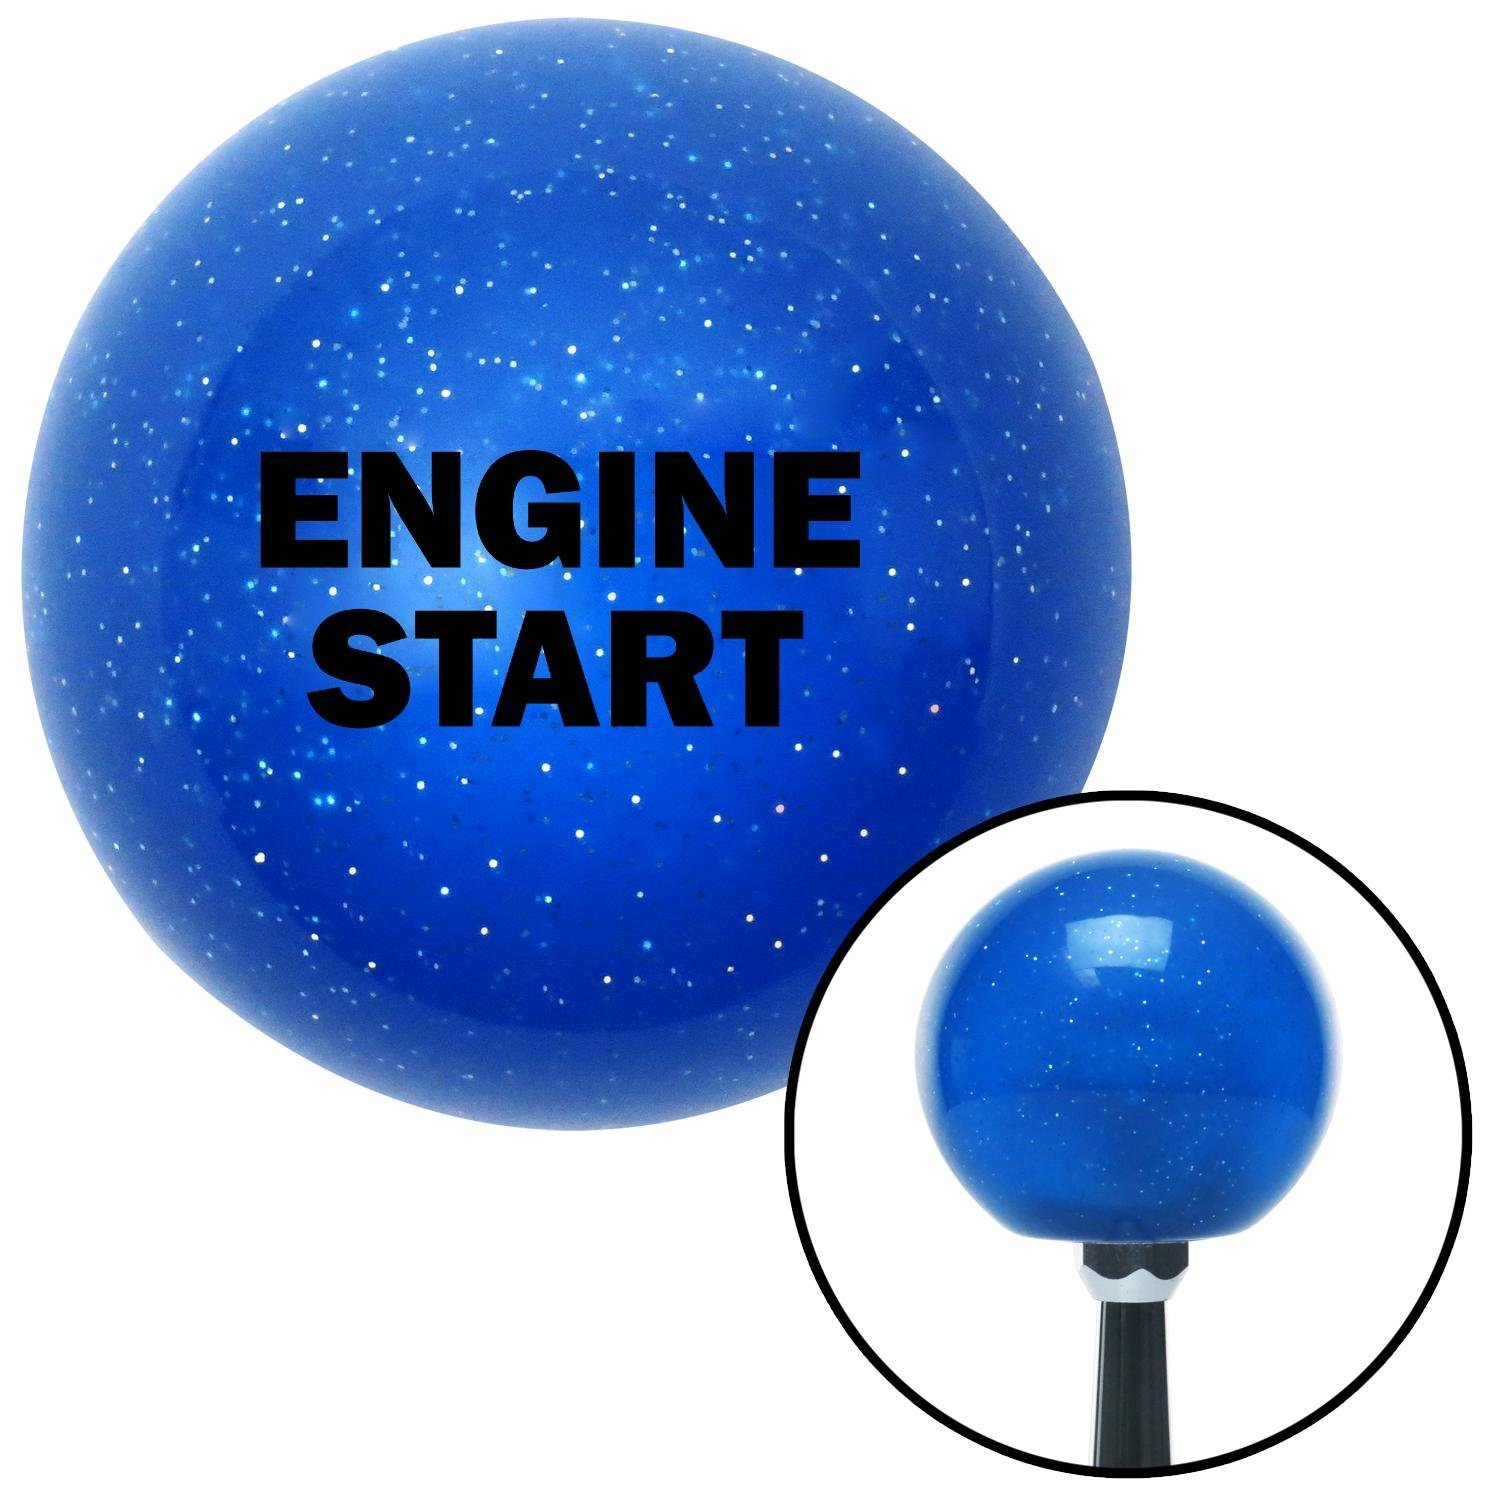 American Shifter 21021 Blue Metal Flake Shift Knob with 16mm x 1.5 Insert Black Engine Start